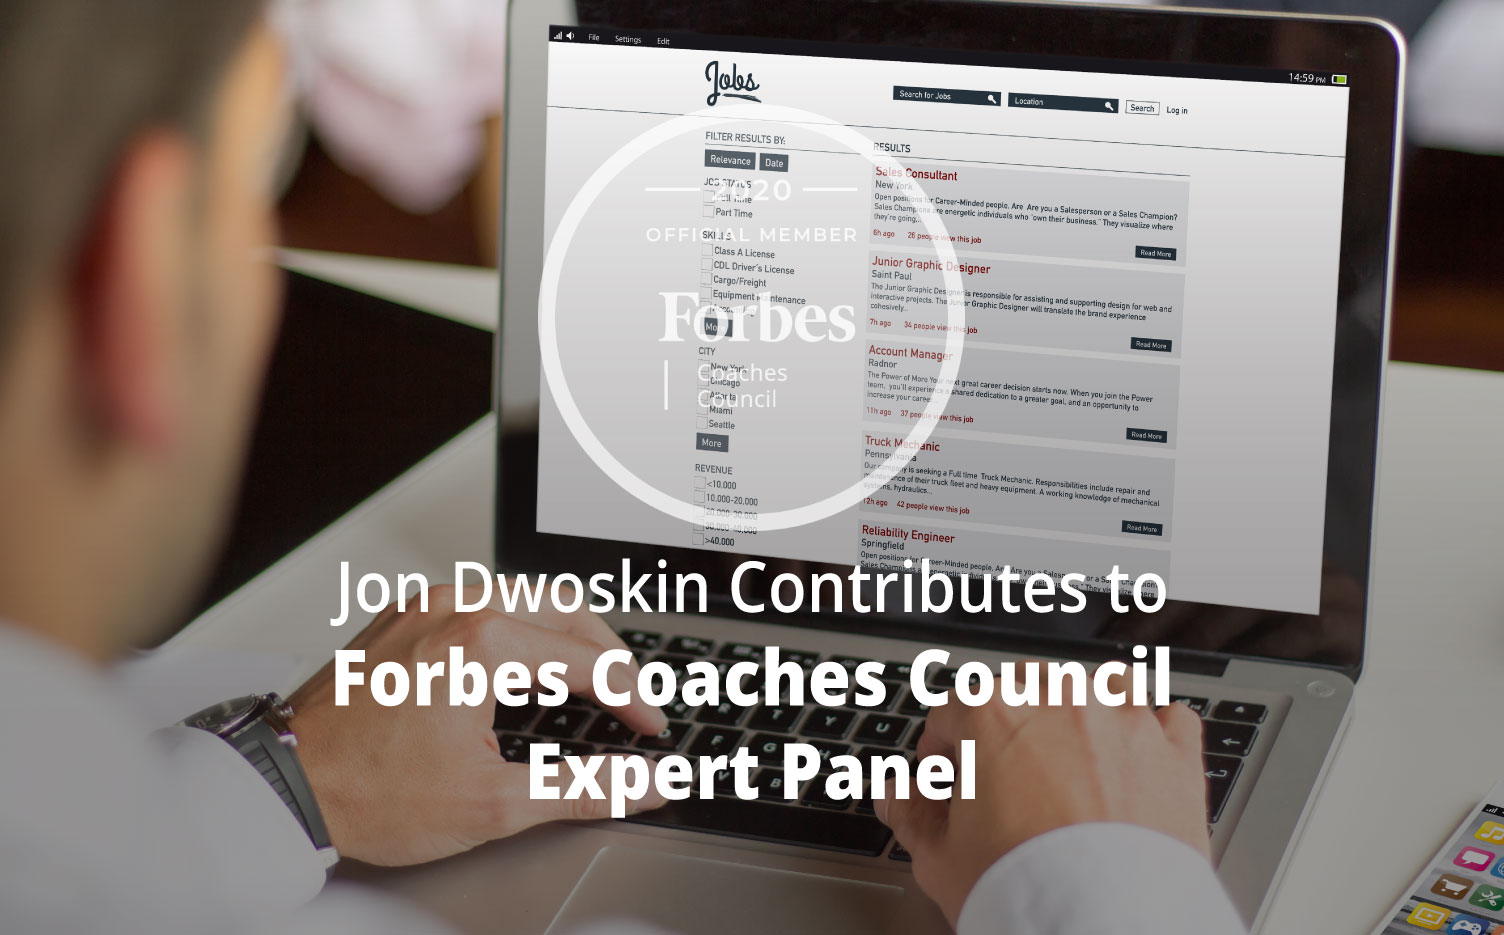 Jon Dwoskin Contributes to Forbes Coaches Council Expert Panel: 12 Ways For Professionals To Know If A Job Aligns With Their Values